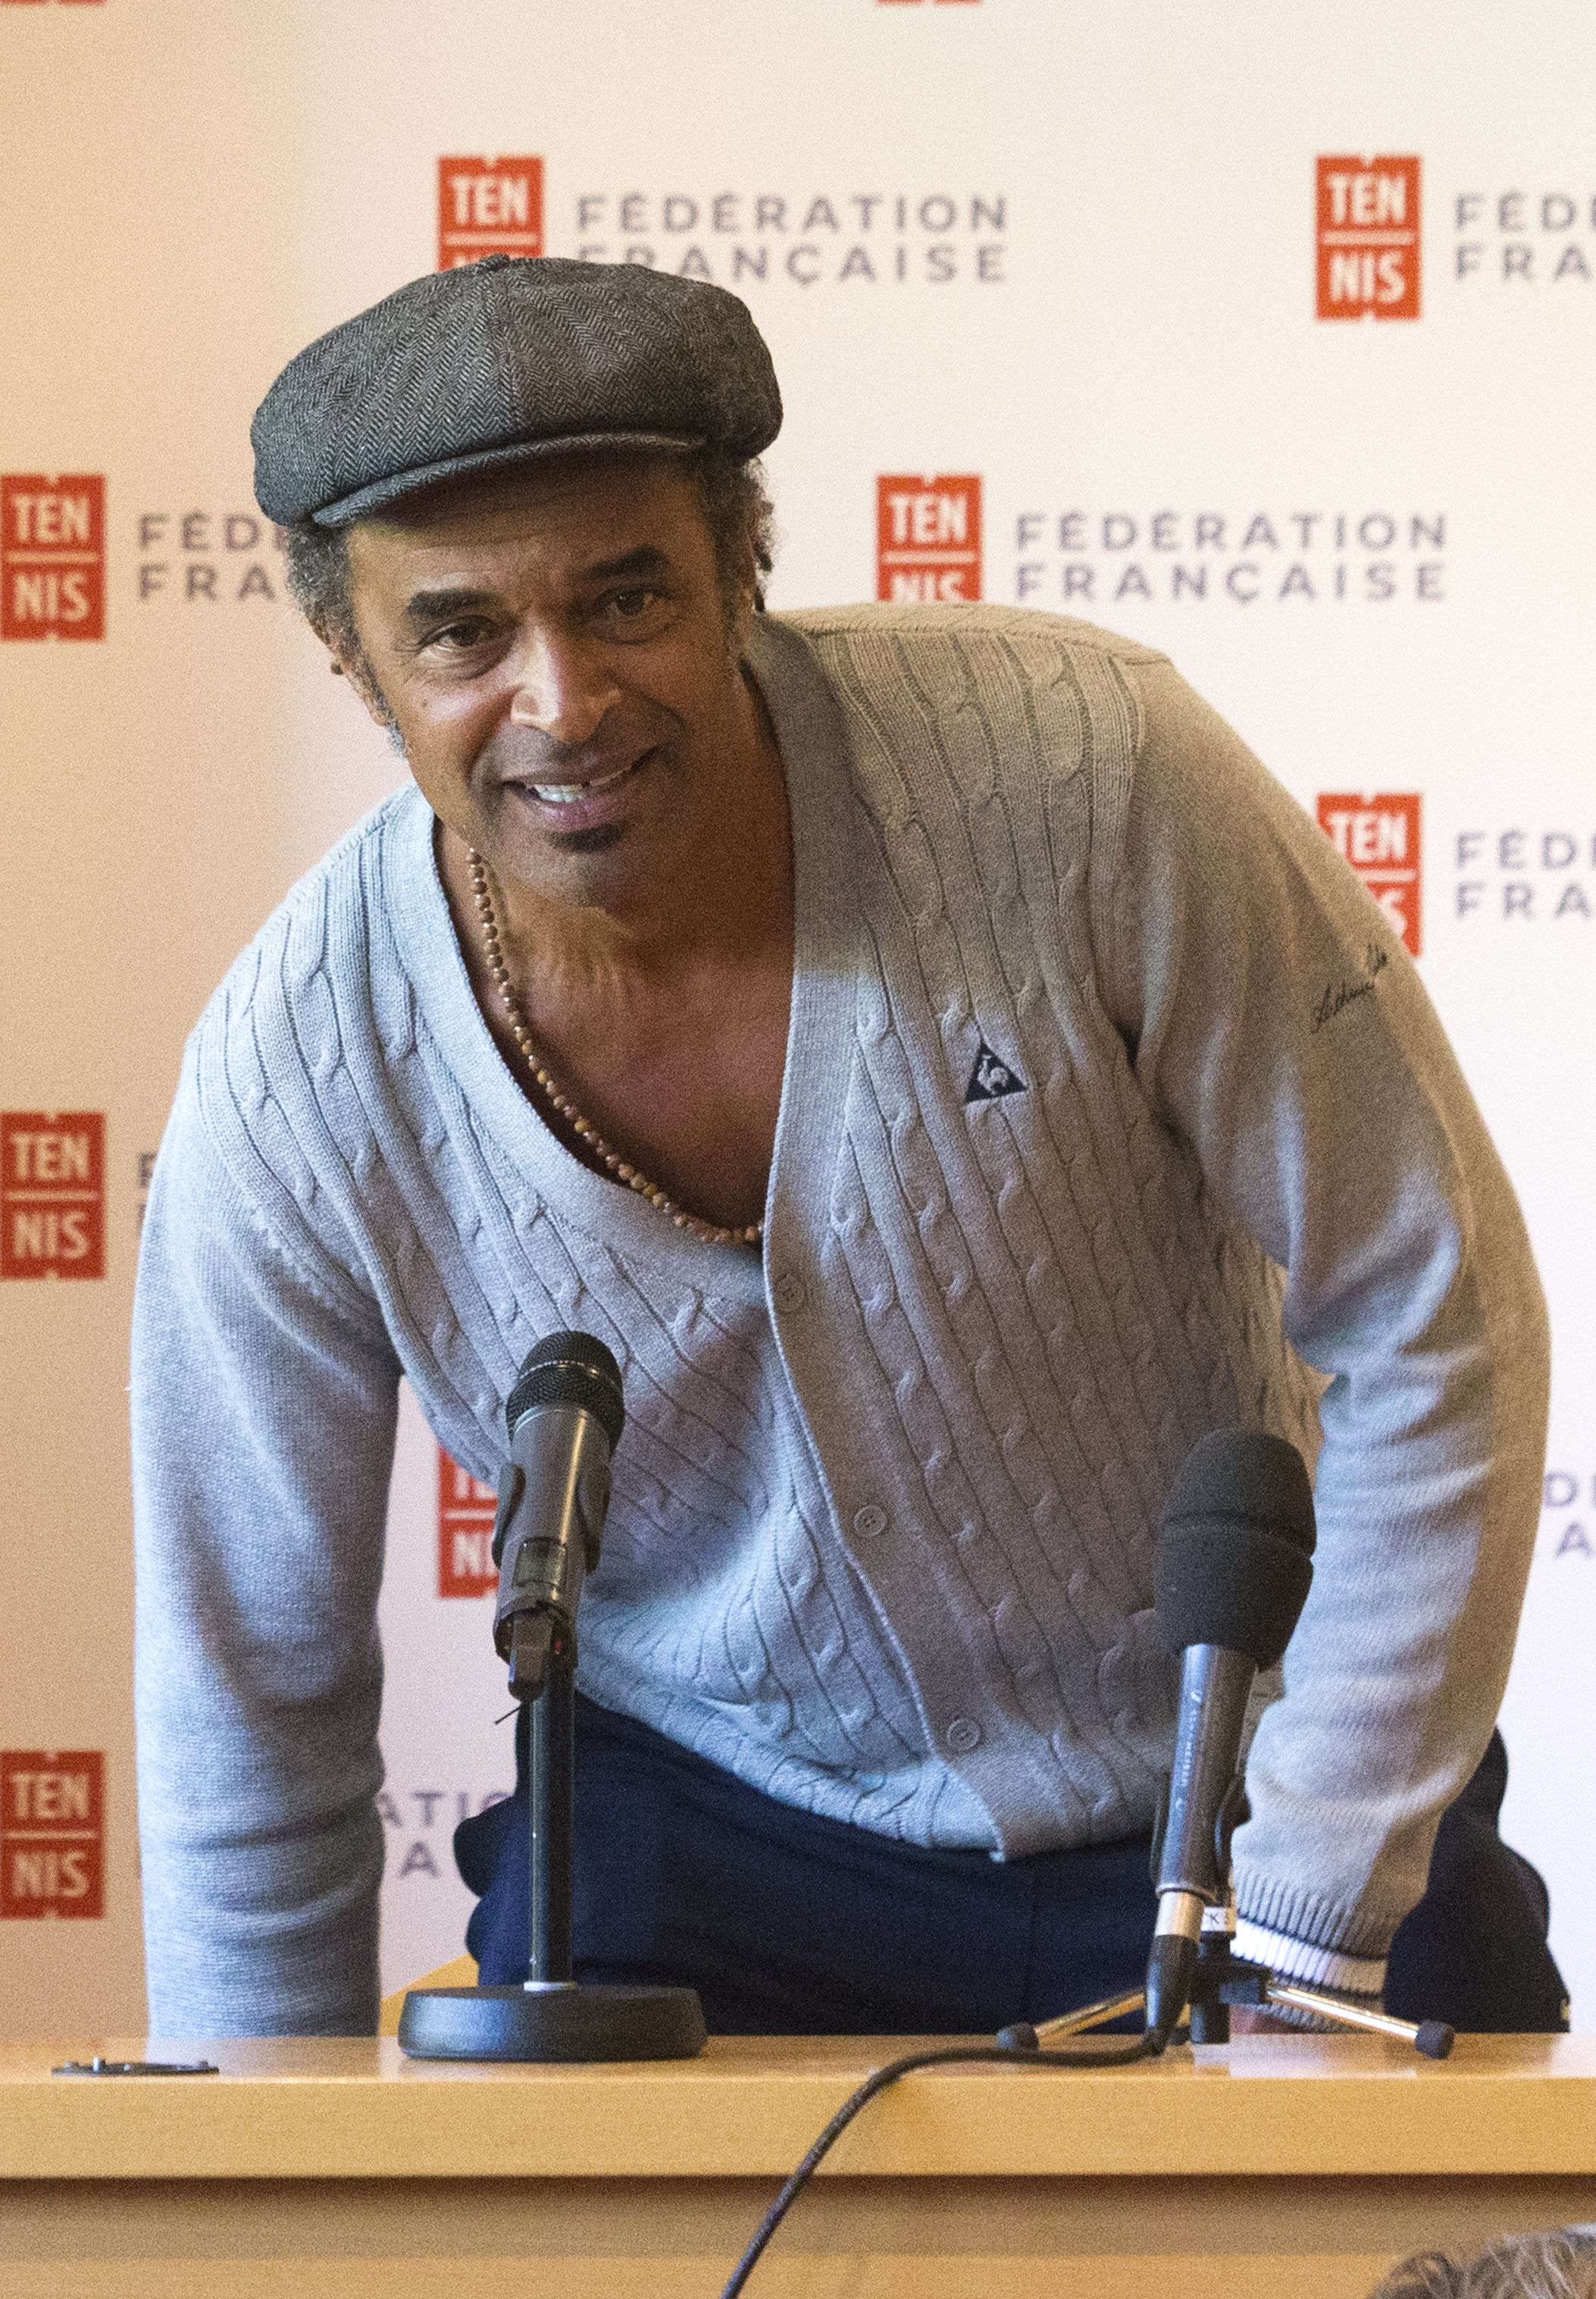 Yannick Noah, the last Frenchman to win a Grand Slam tournament, arrives at a  press conference at the Roland Garros stadium in Paris, France, Tuesday, Sept. 22, 2015. Noah has been appointed as the new France Davis Cup captain Monday. (AP Photo/Jacques B